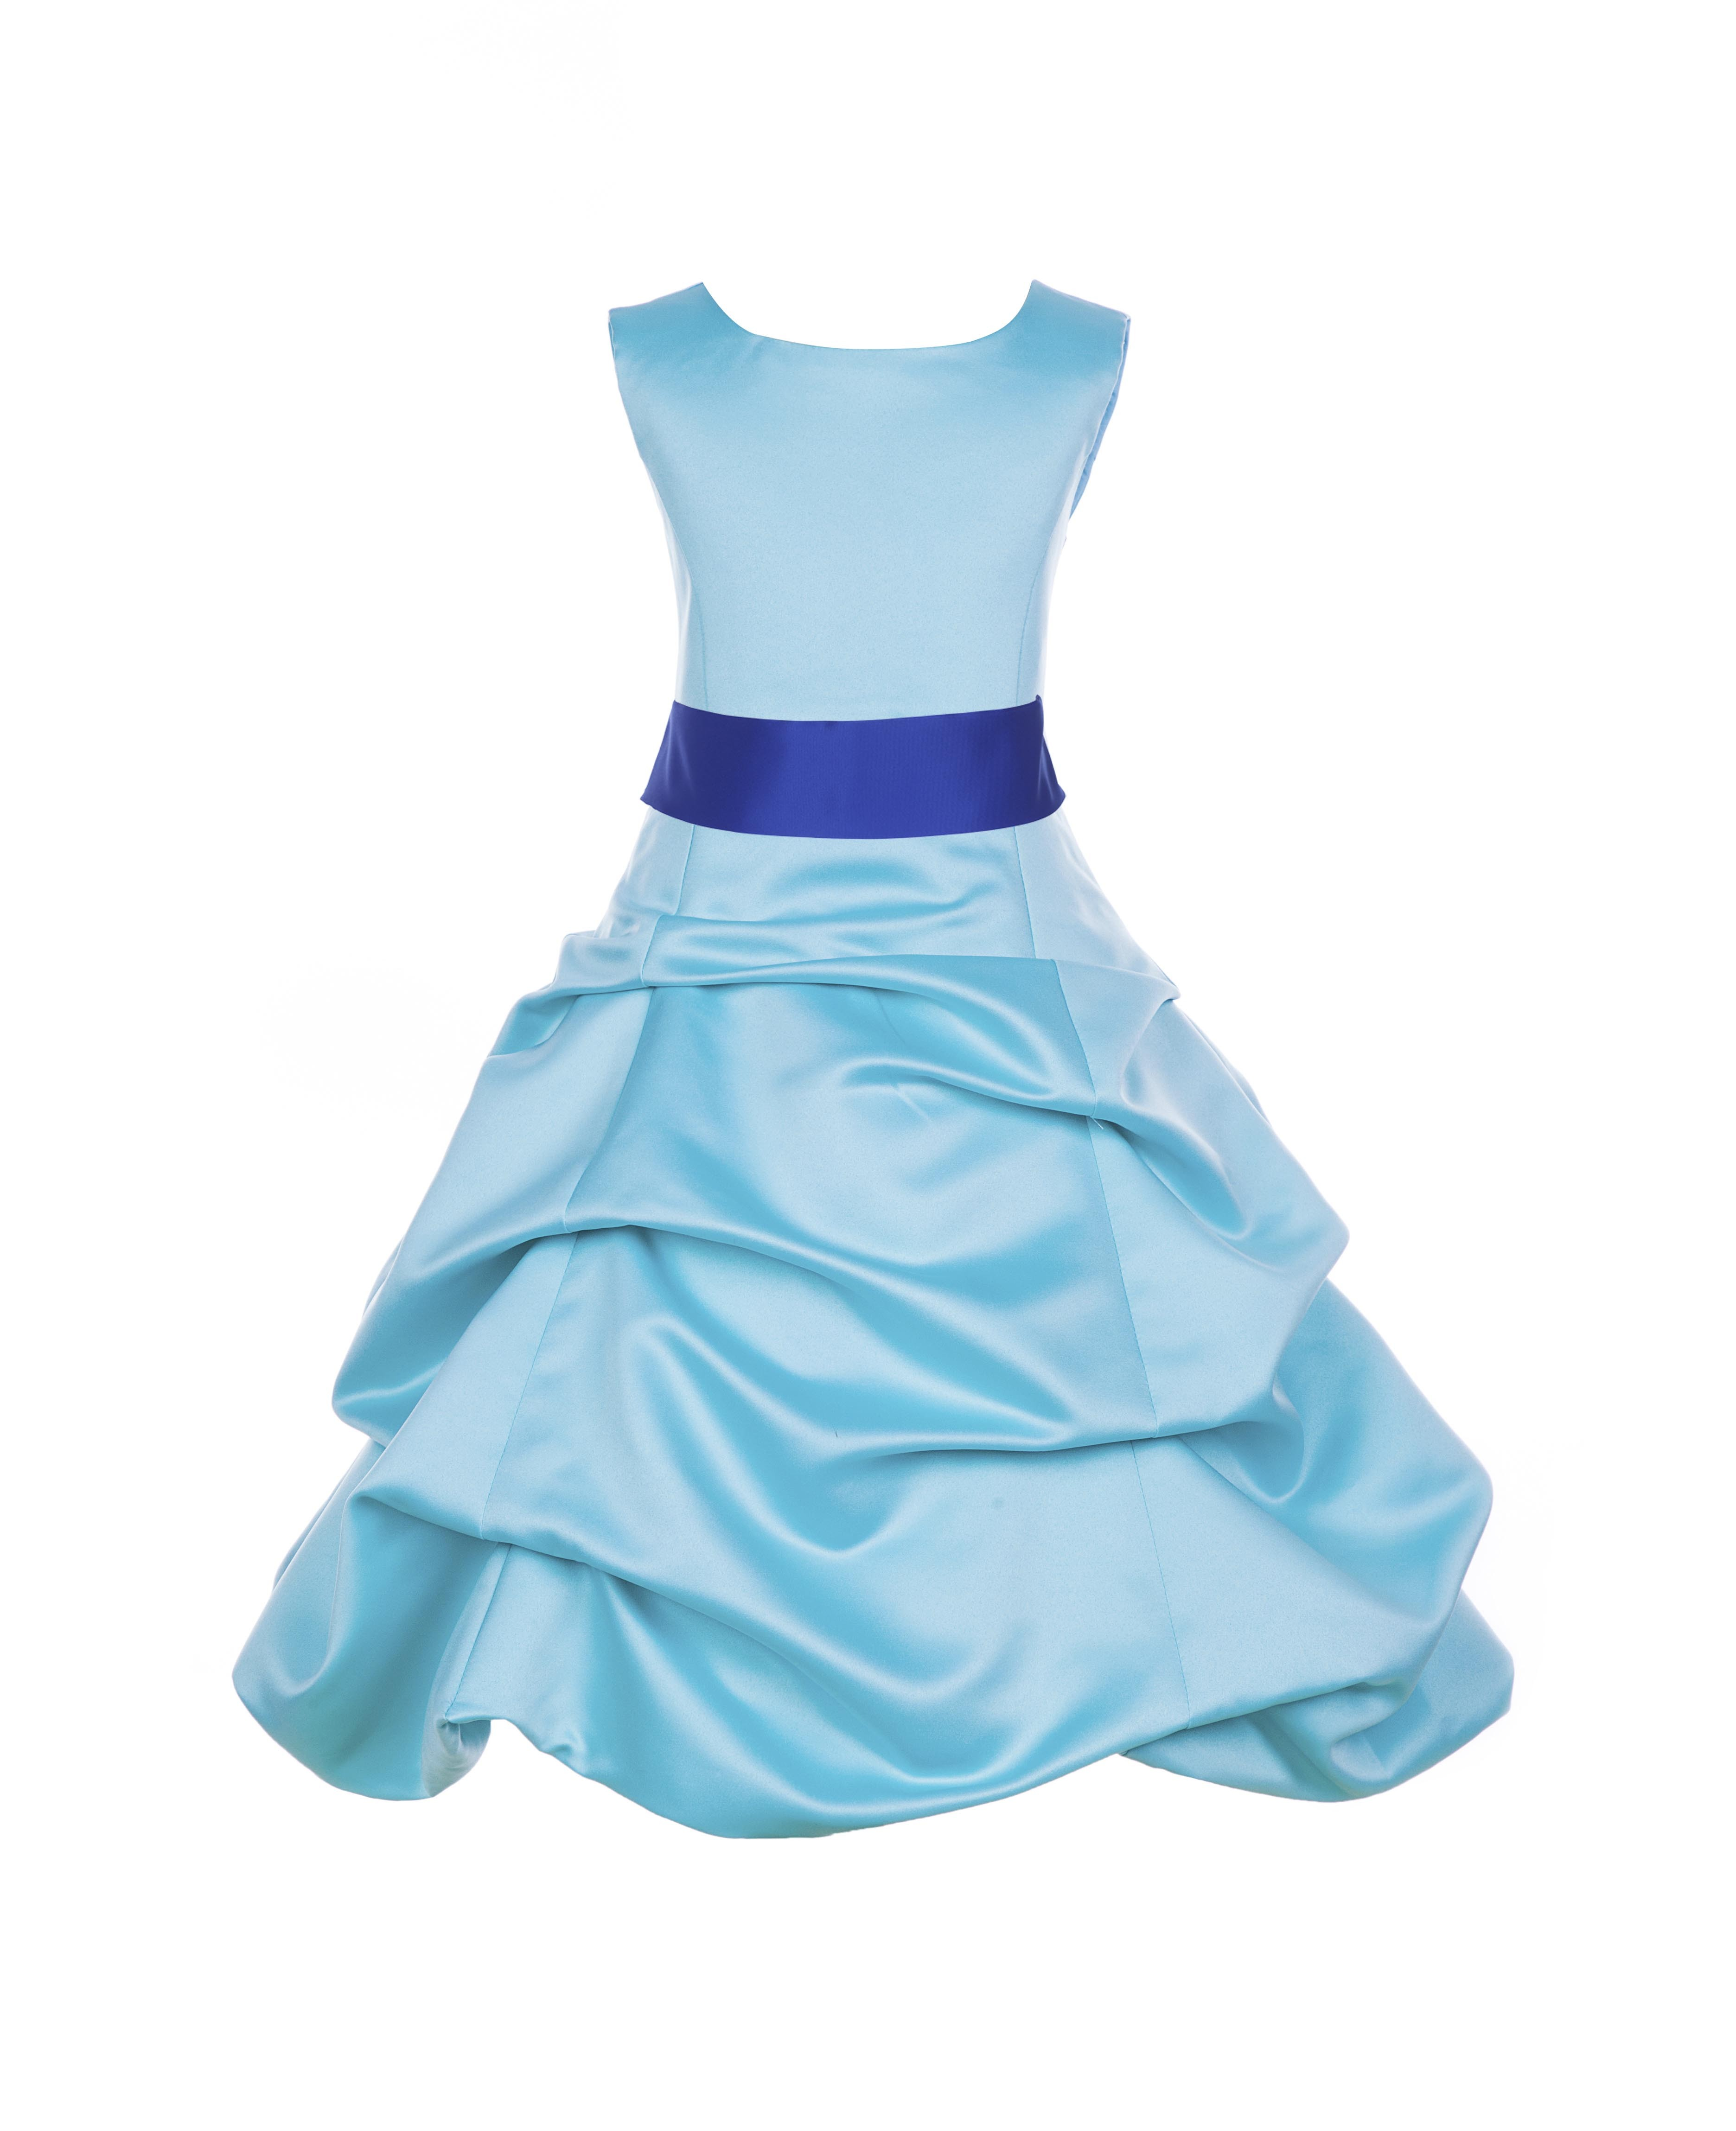 c61922dab34 Spa Blue Horizon Satin Pick-Up Bubble Flower Girl Dress 806S - Spa ...